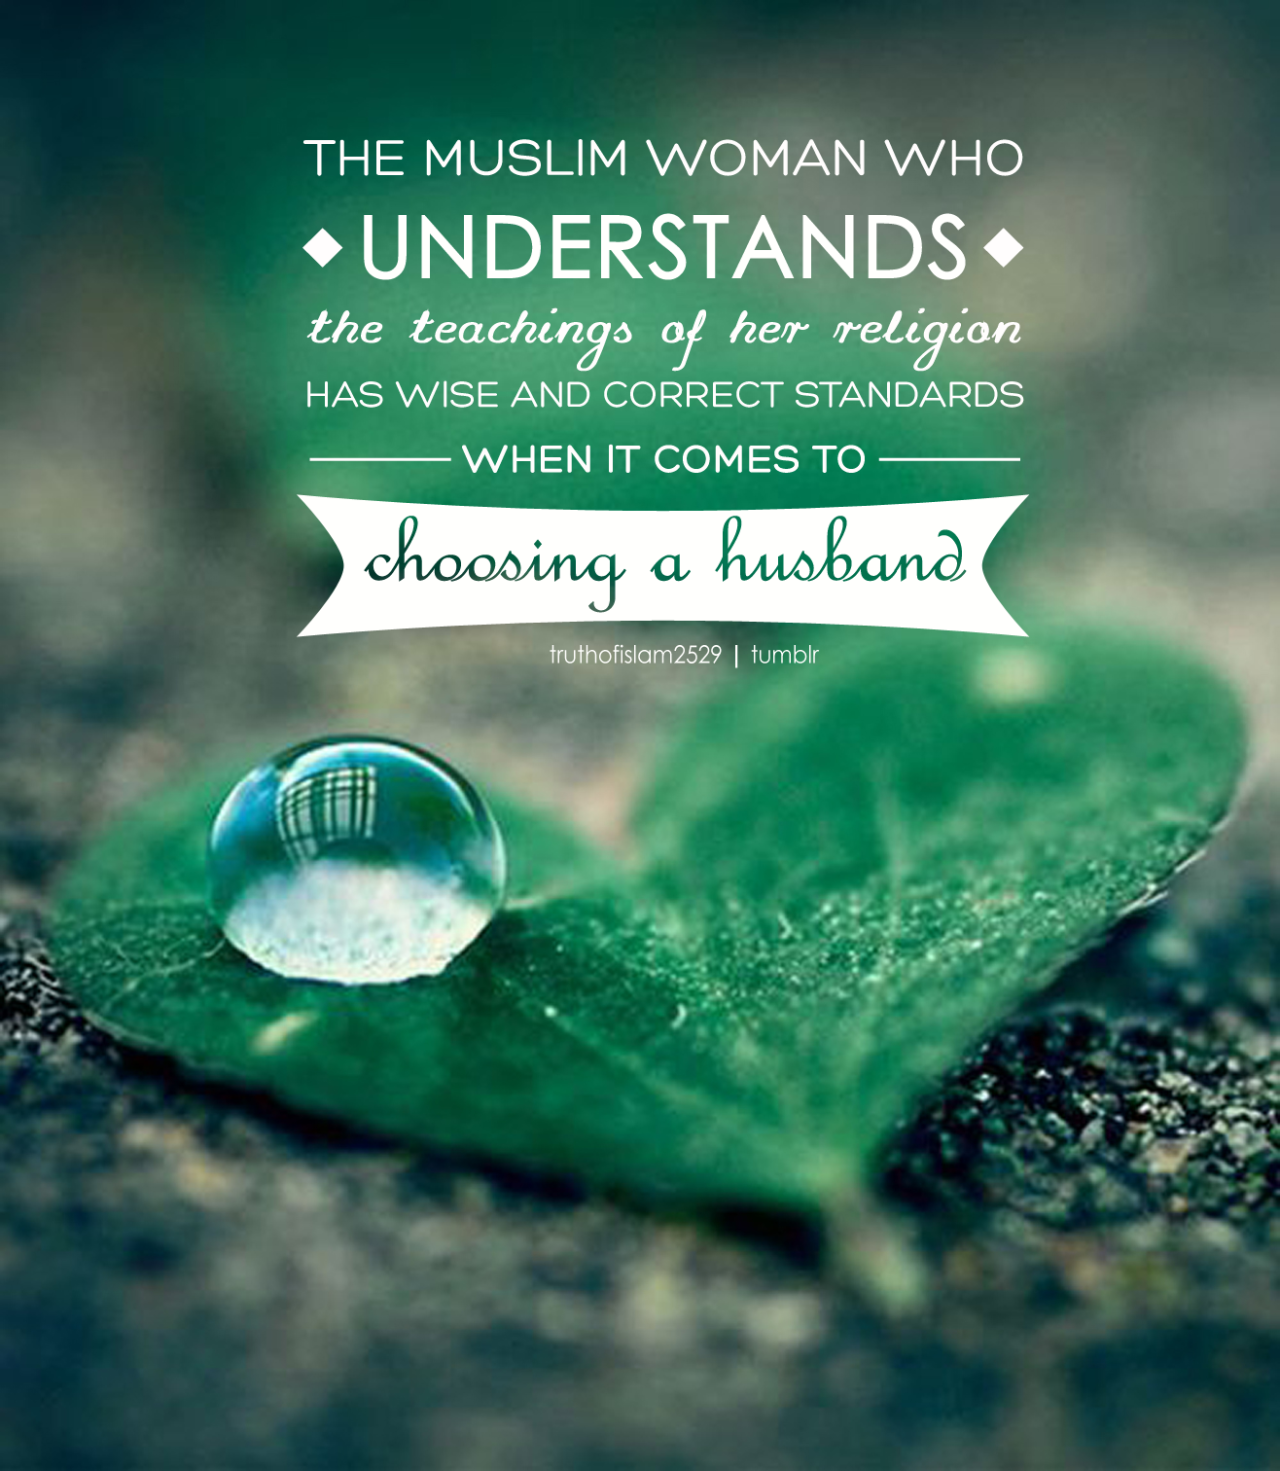 Islamic Quotes For Death Of A Loved One: Muslim Women Quotes. QuotesGram